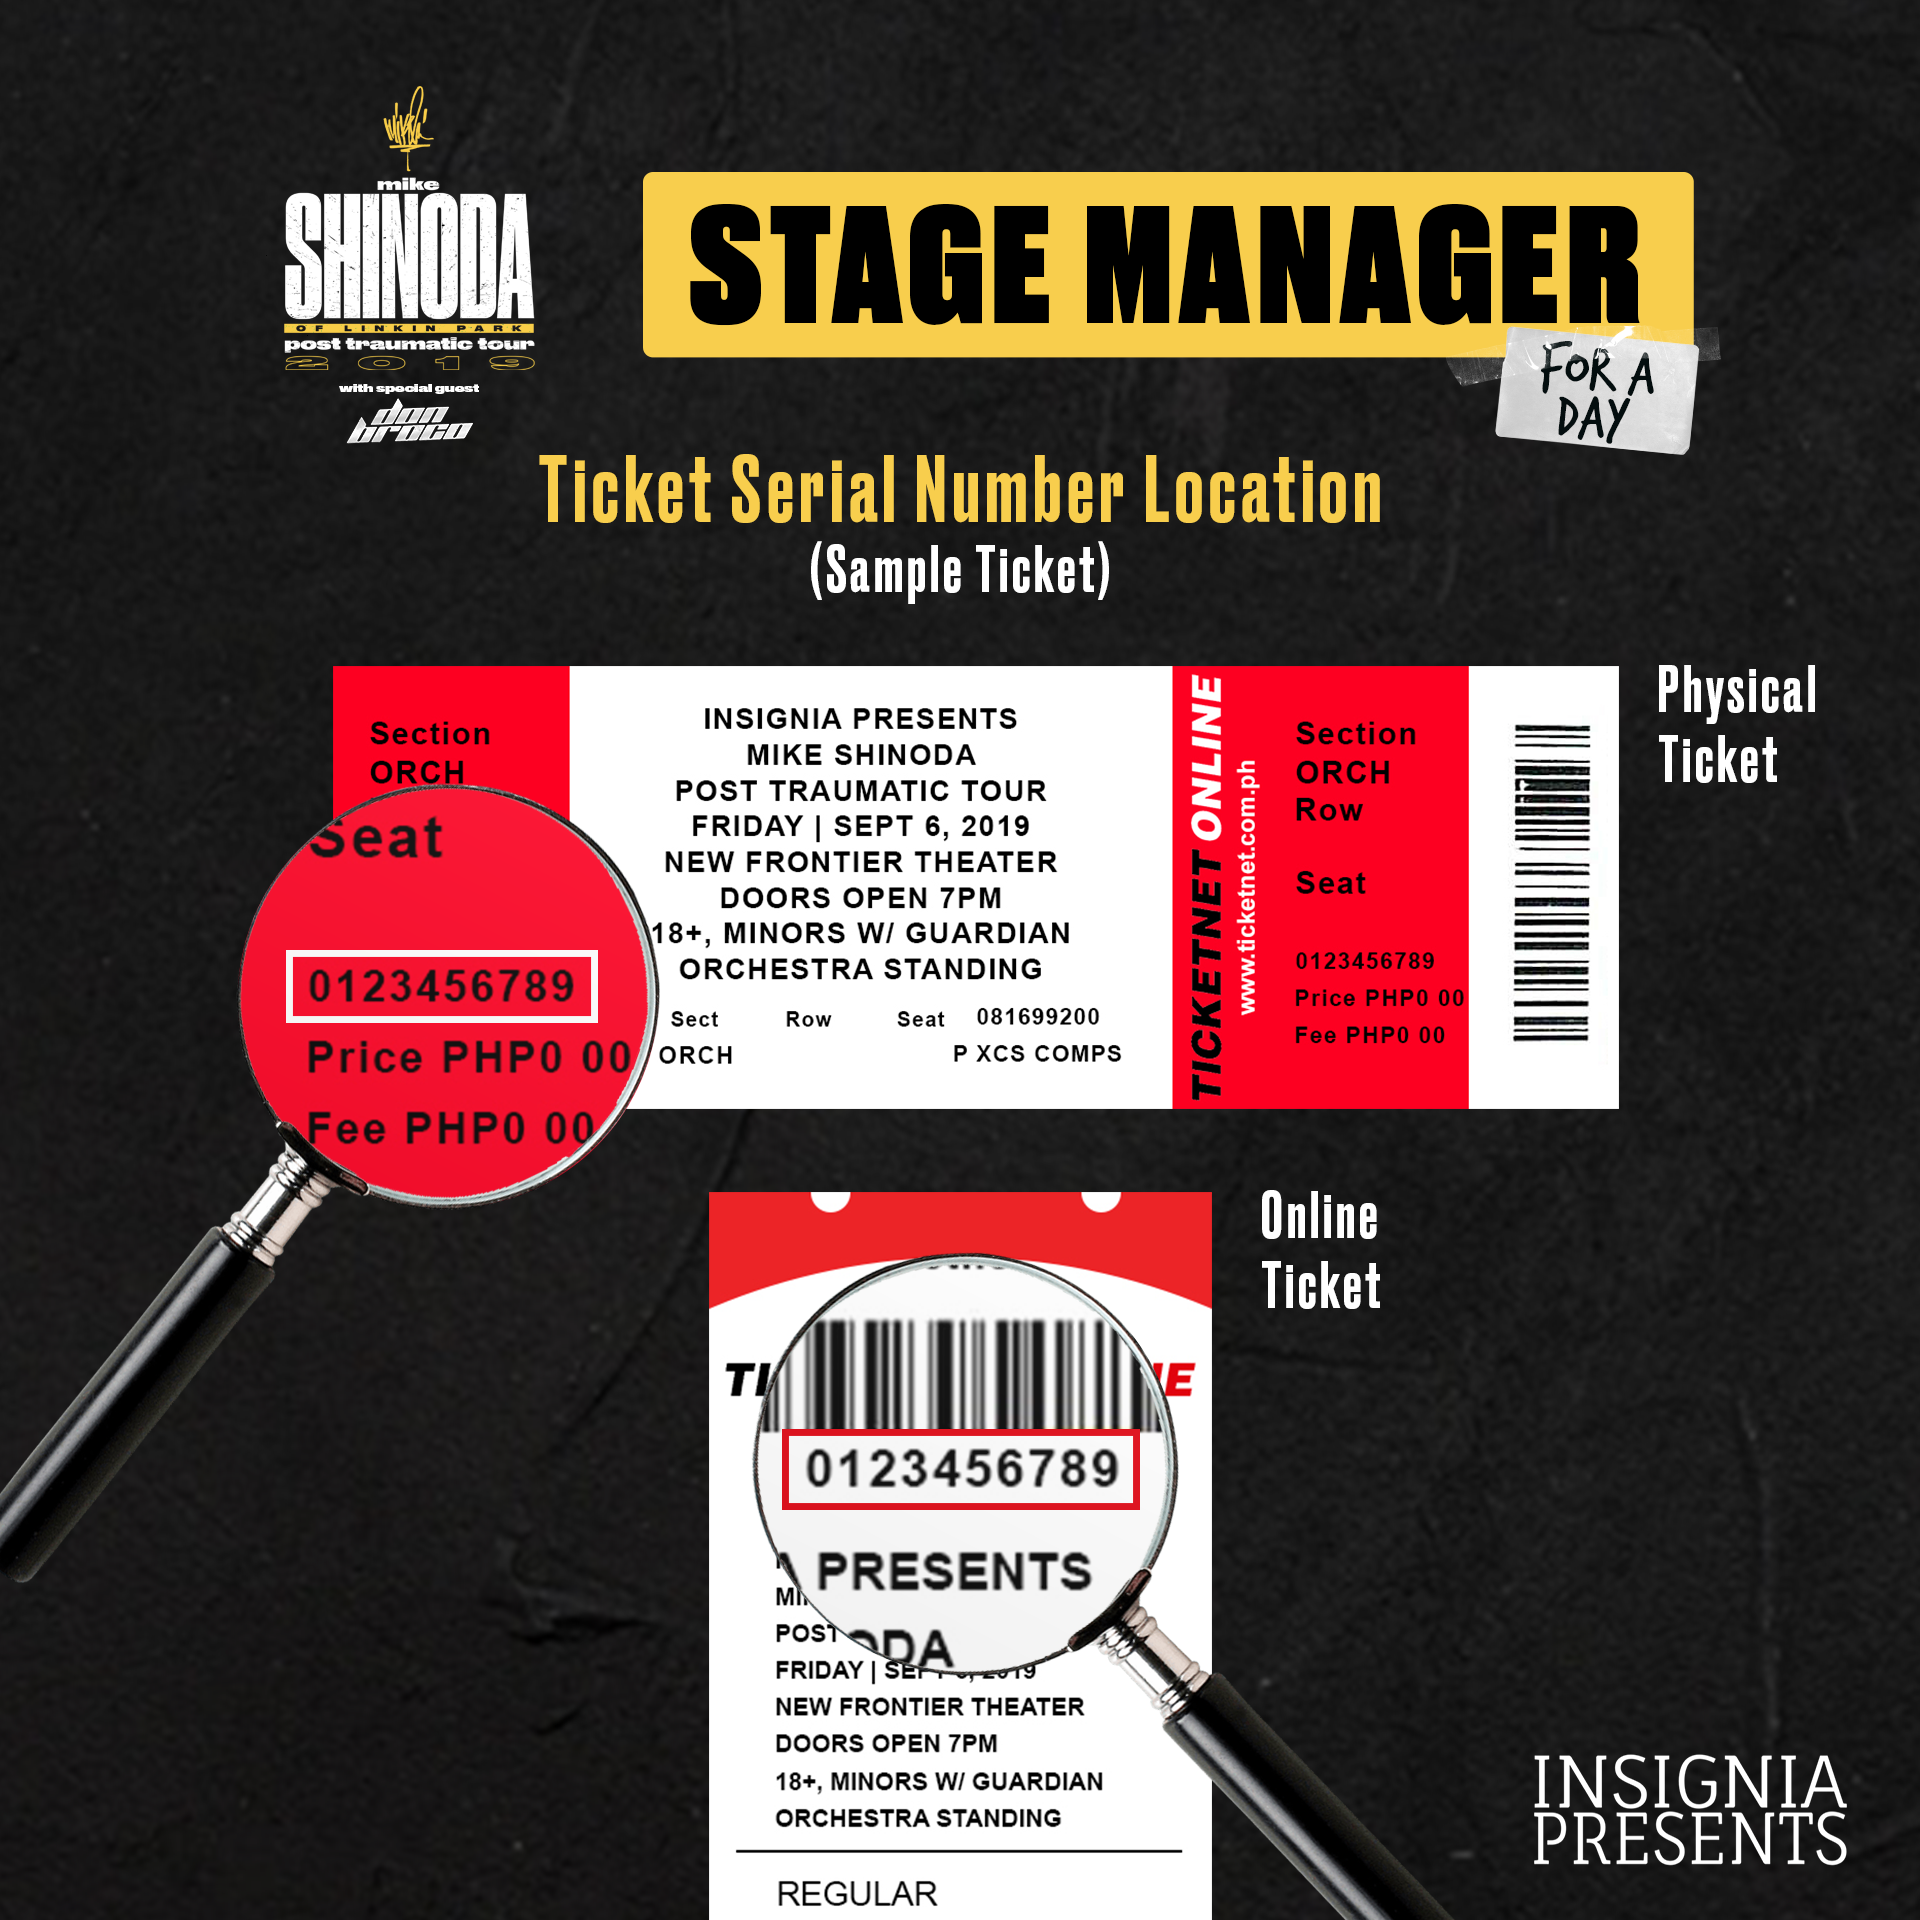 StageManagerForADay-SerialNumber-MikeShinoda-09.06.19-NewFrontierTheater-ManilaPhilippines-v6.png